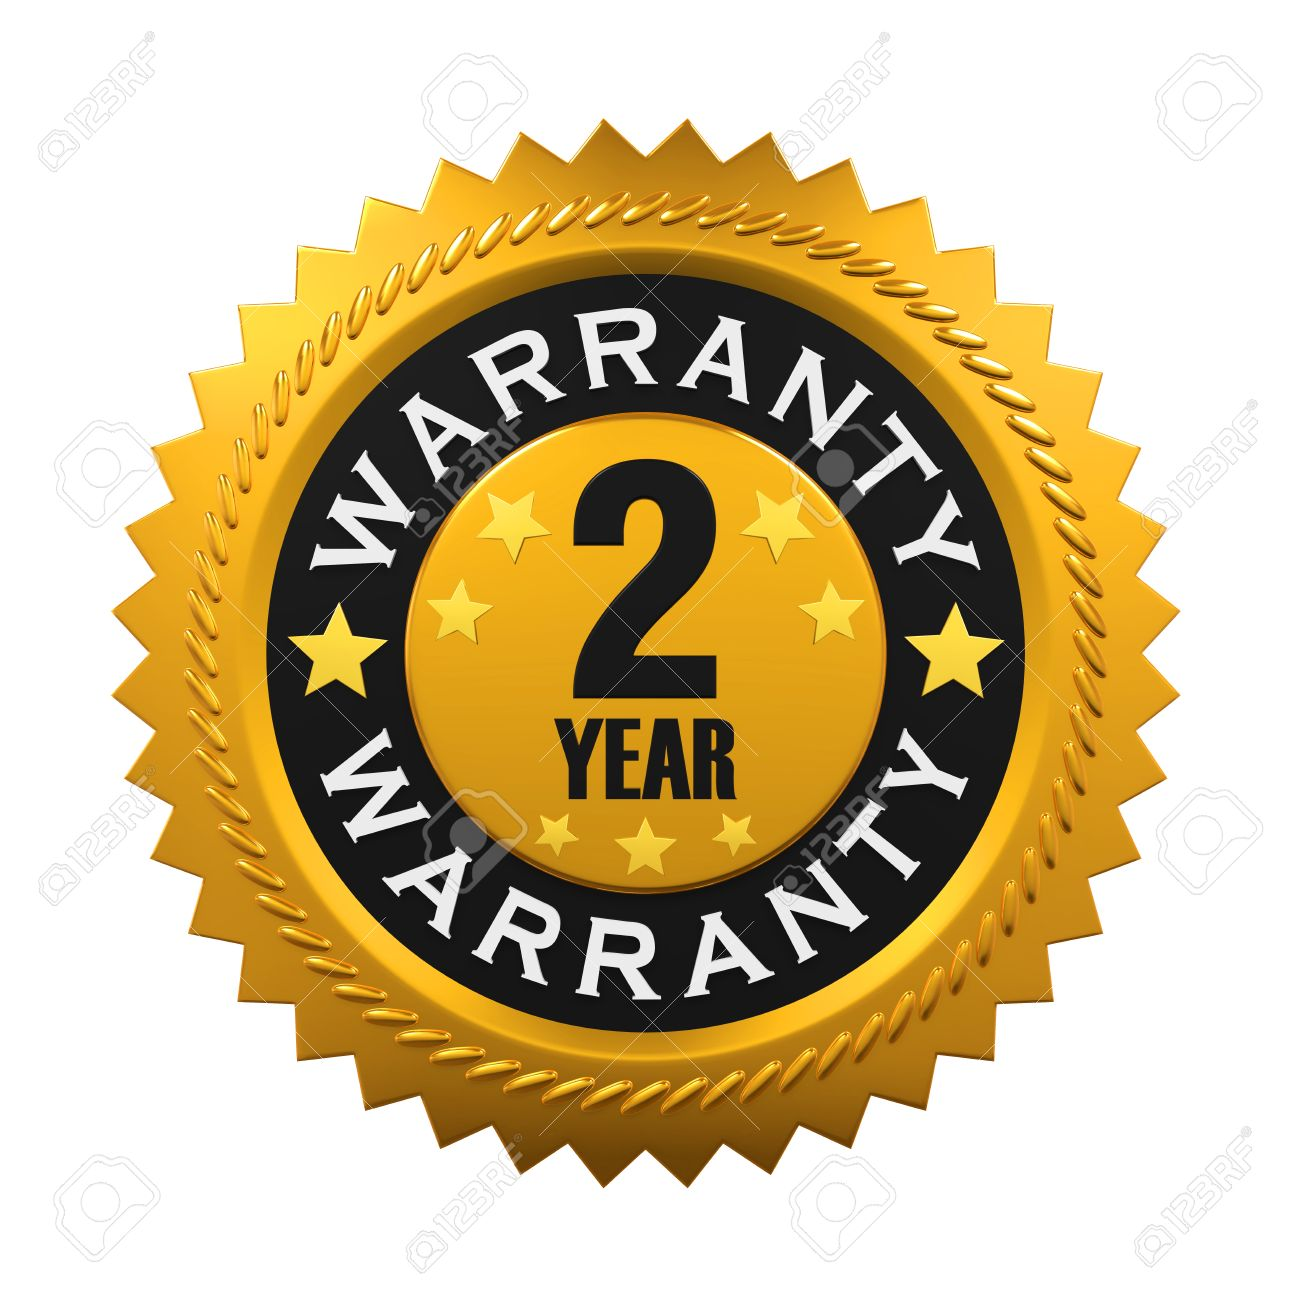 2 Years Warranty Sign Stock Photo, Picture And Royalty Free Image. Image 58977530.